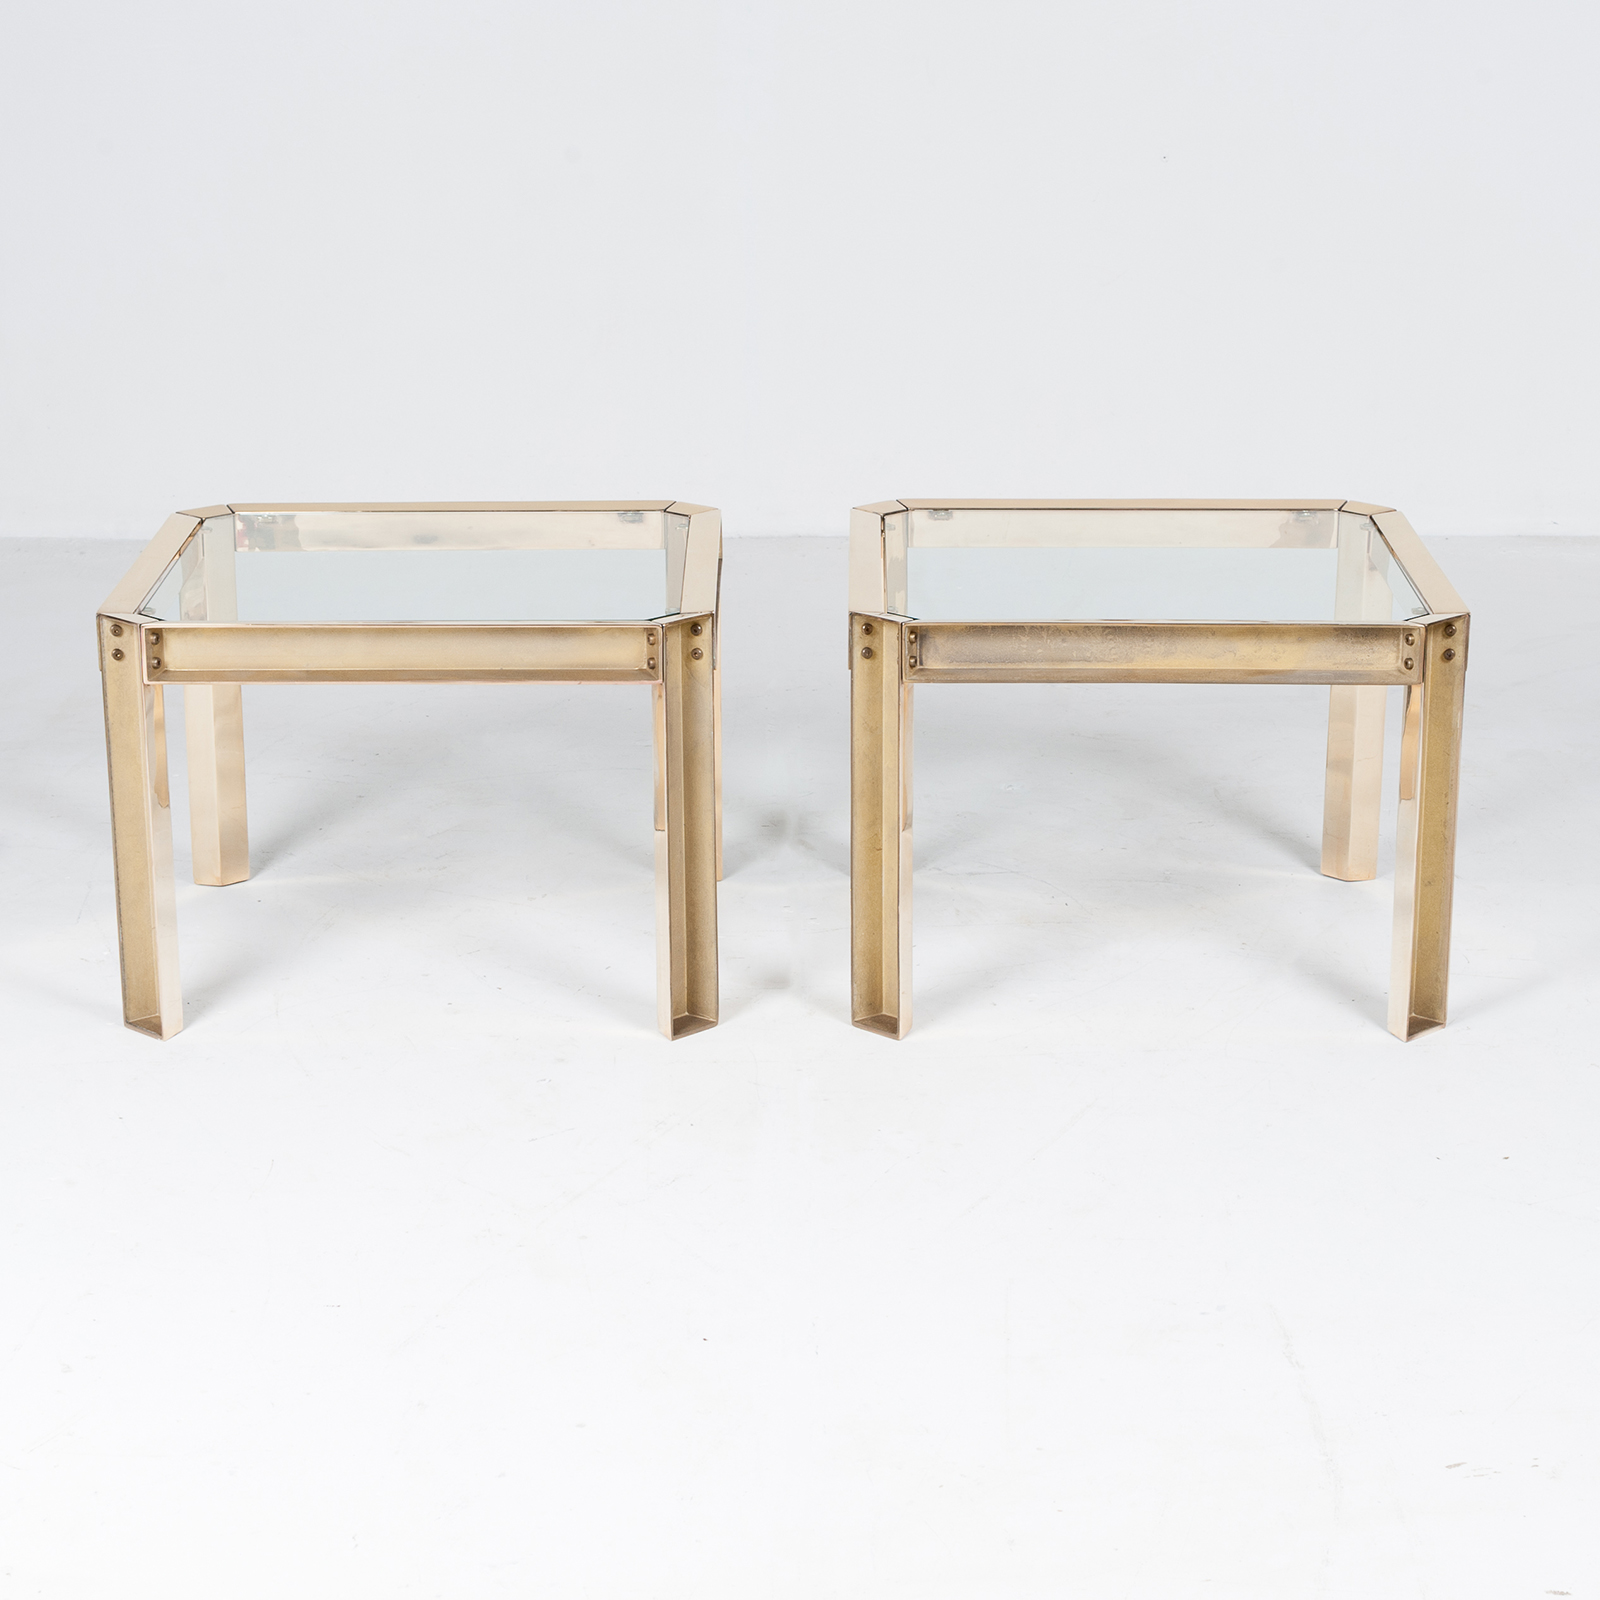 Square Side Table With Clear Glass Top By Peter Ghyczy, 1970s, The Netherlands 40